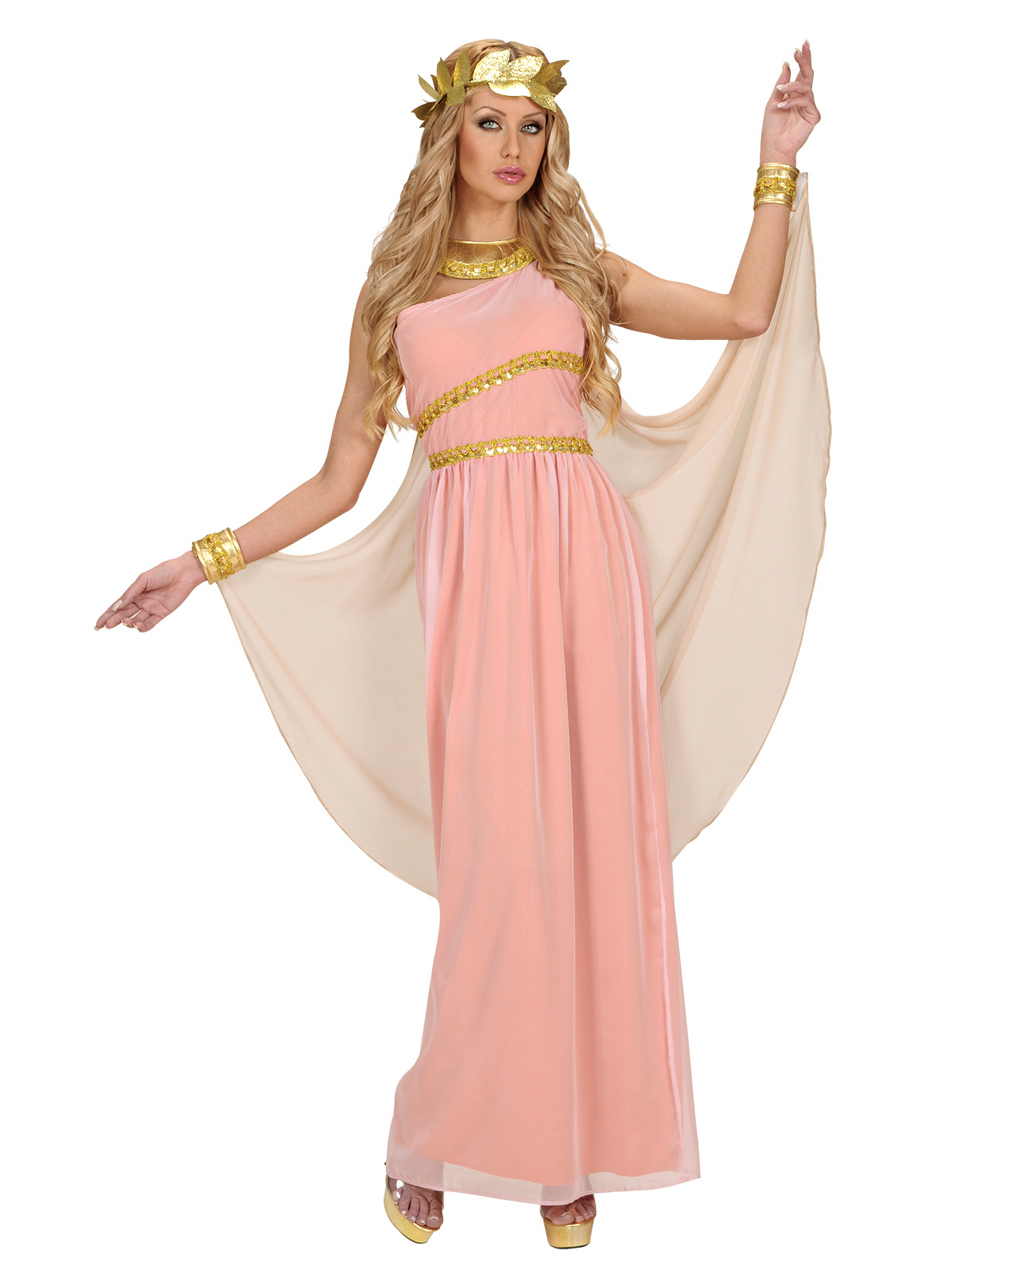 Greek Goddess Aphrodite S Historical costume Greece ...Greek Goddess Aphrodite With Clothes